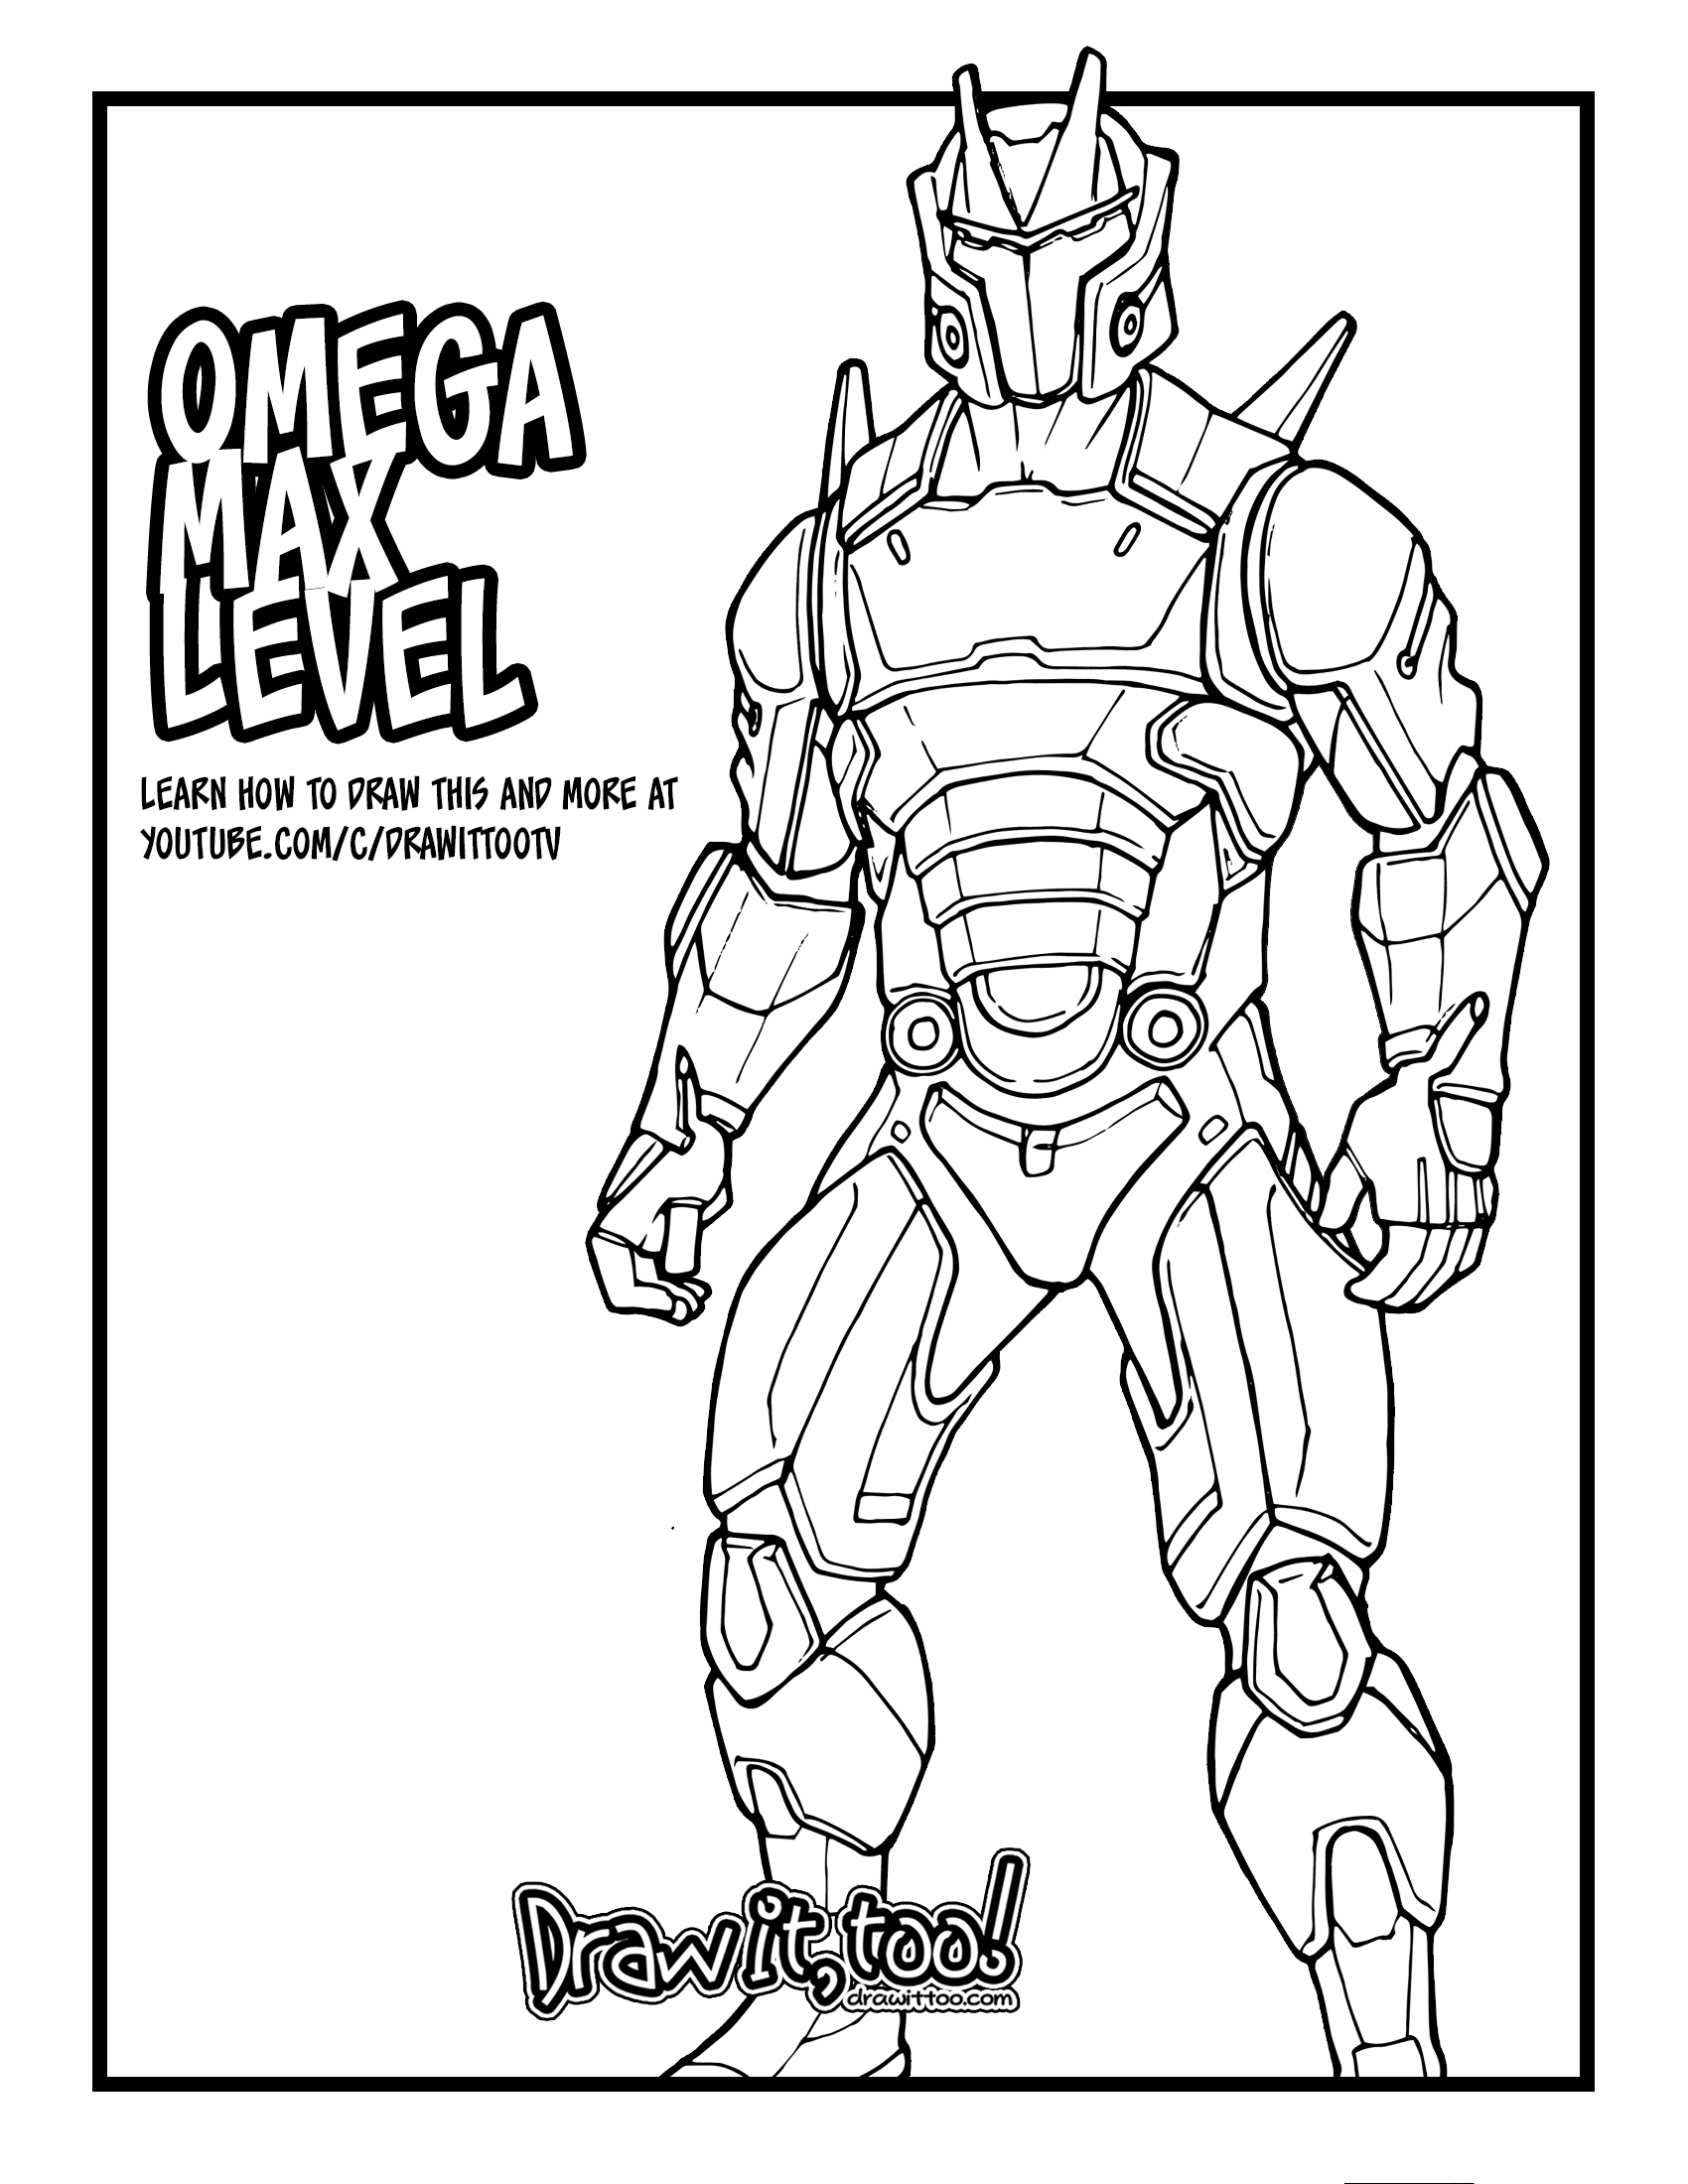 fortnite season 4 coloring pages dibujos para colorear fortnite temporada 11 dibujos para season fortnite coloring pages 4